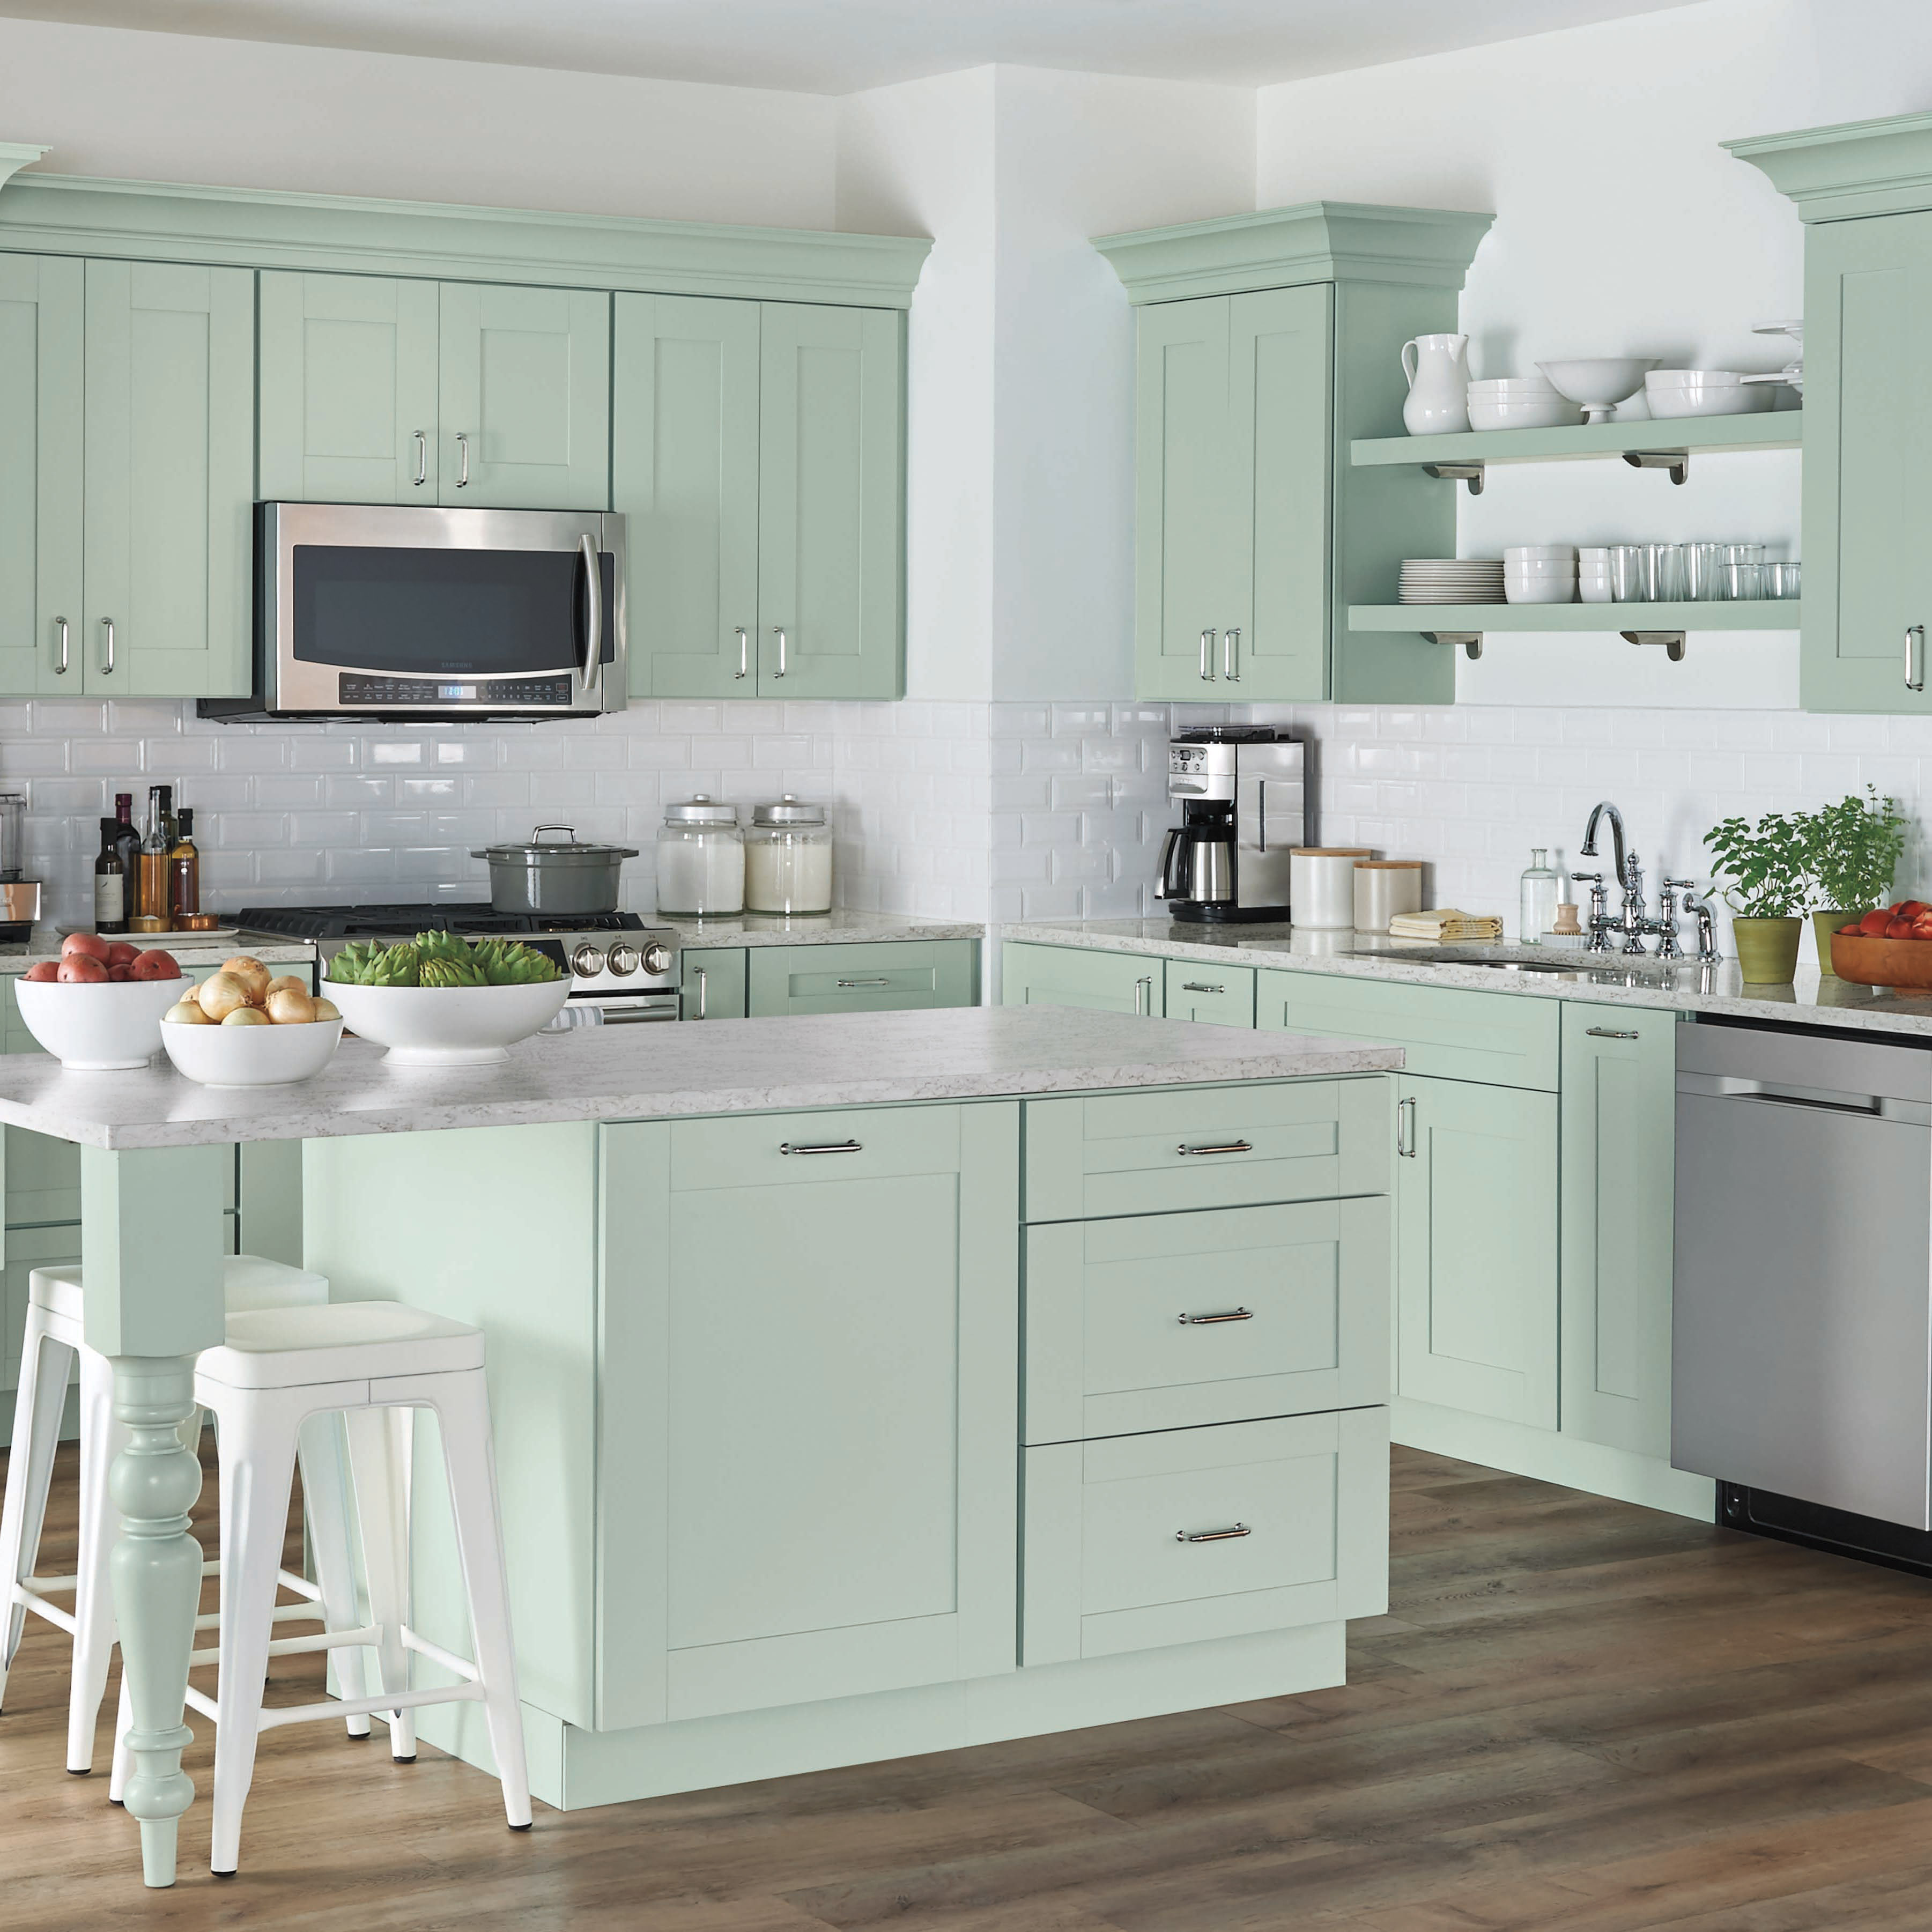 Choosing a Kitchen Island: 13 Things You Need to Know ...